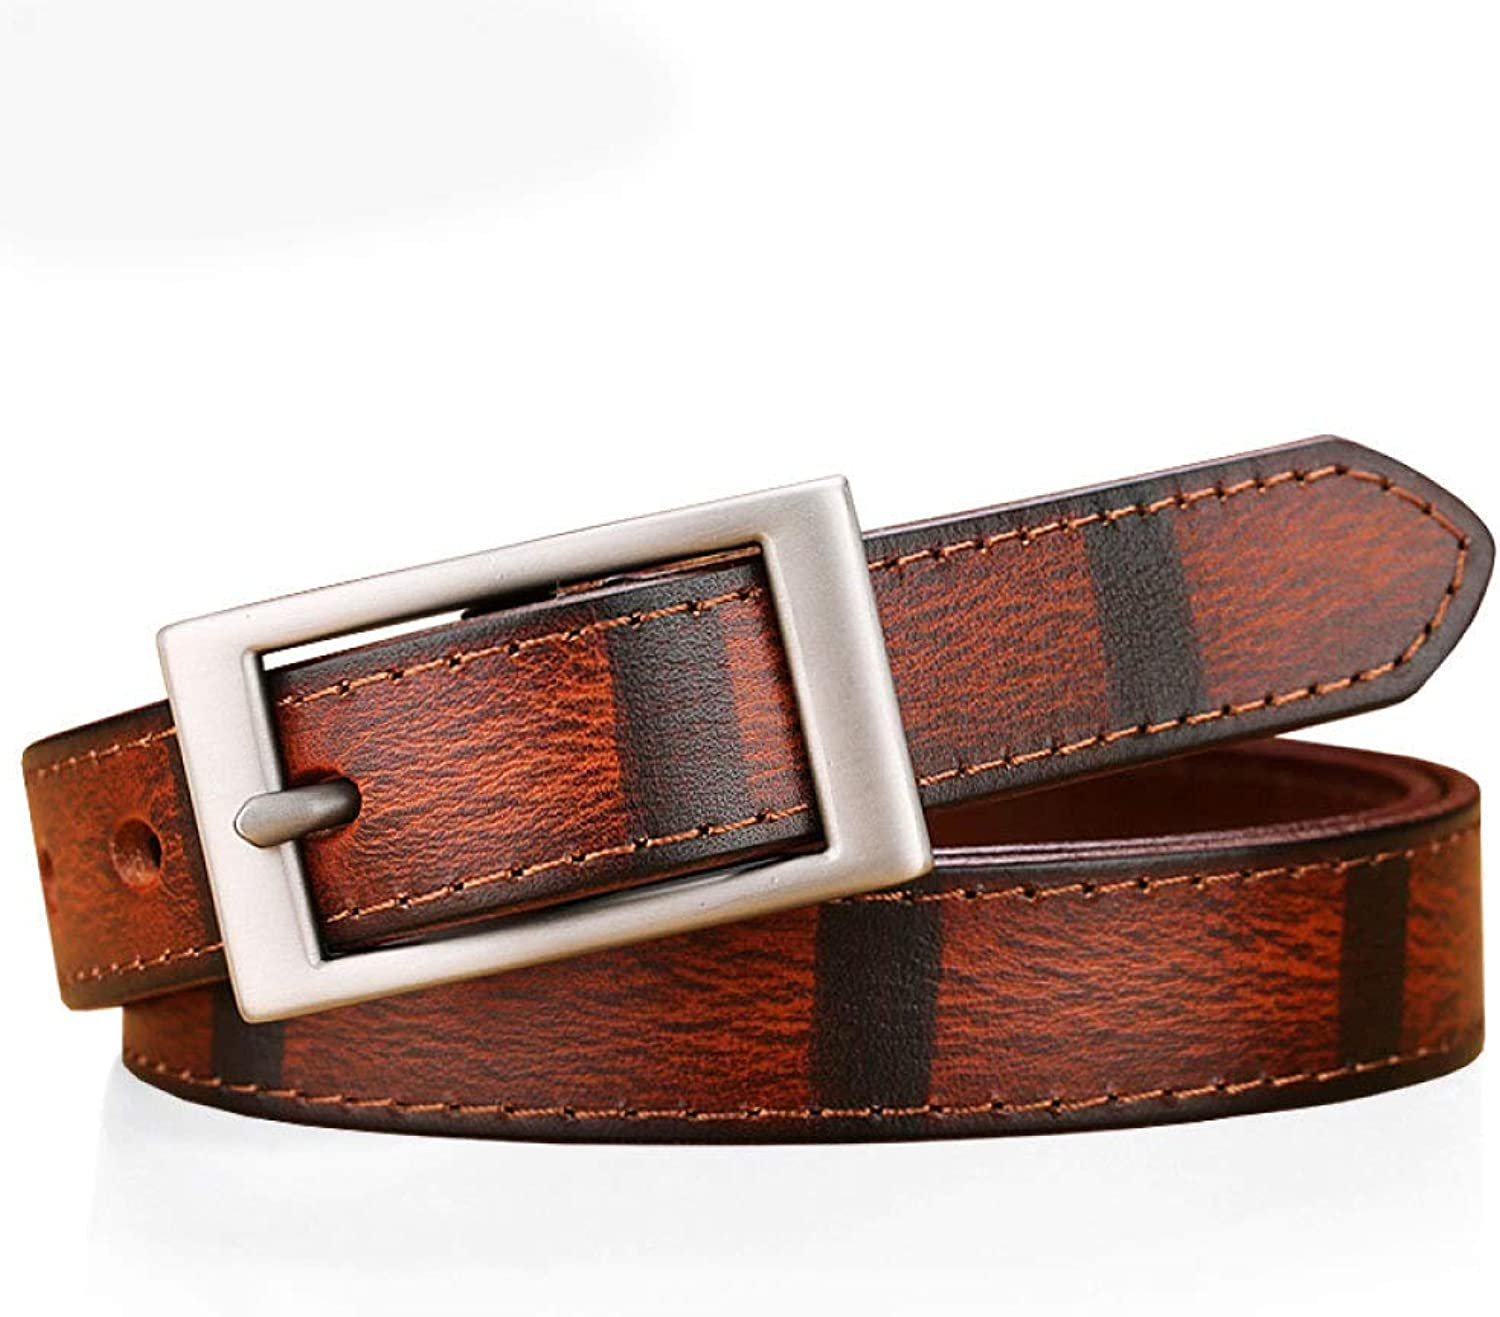 Leather Belt for WomensCowhide Decorative Waist Belt with Buckle